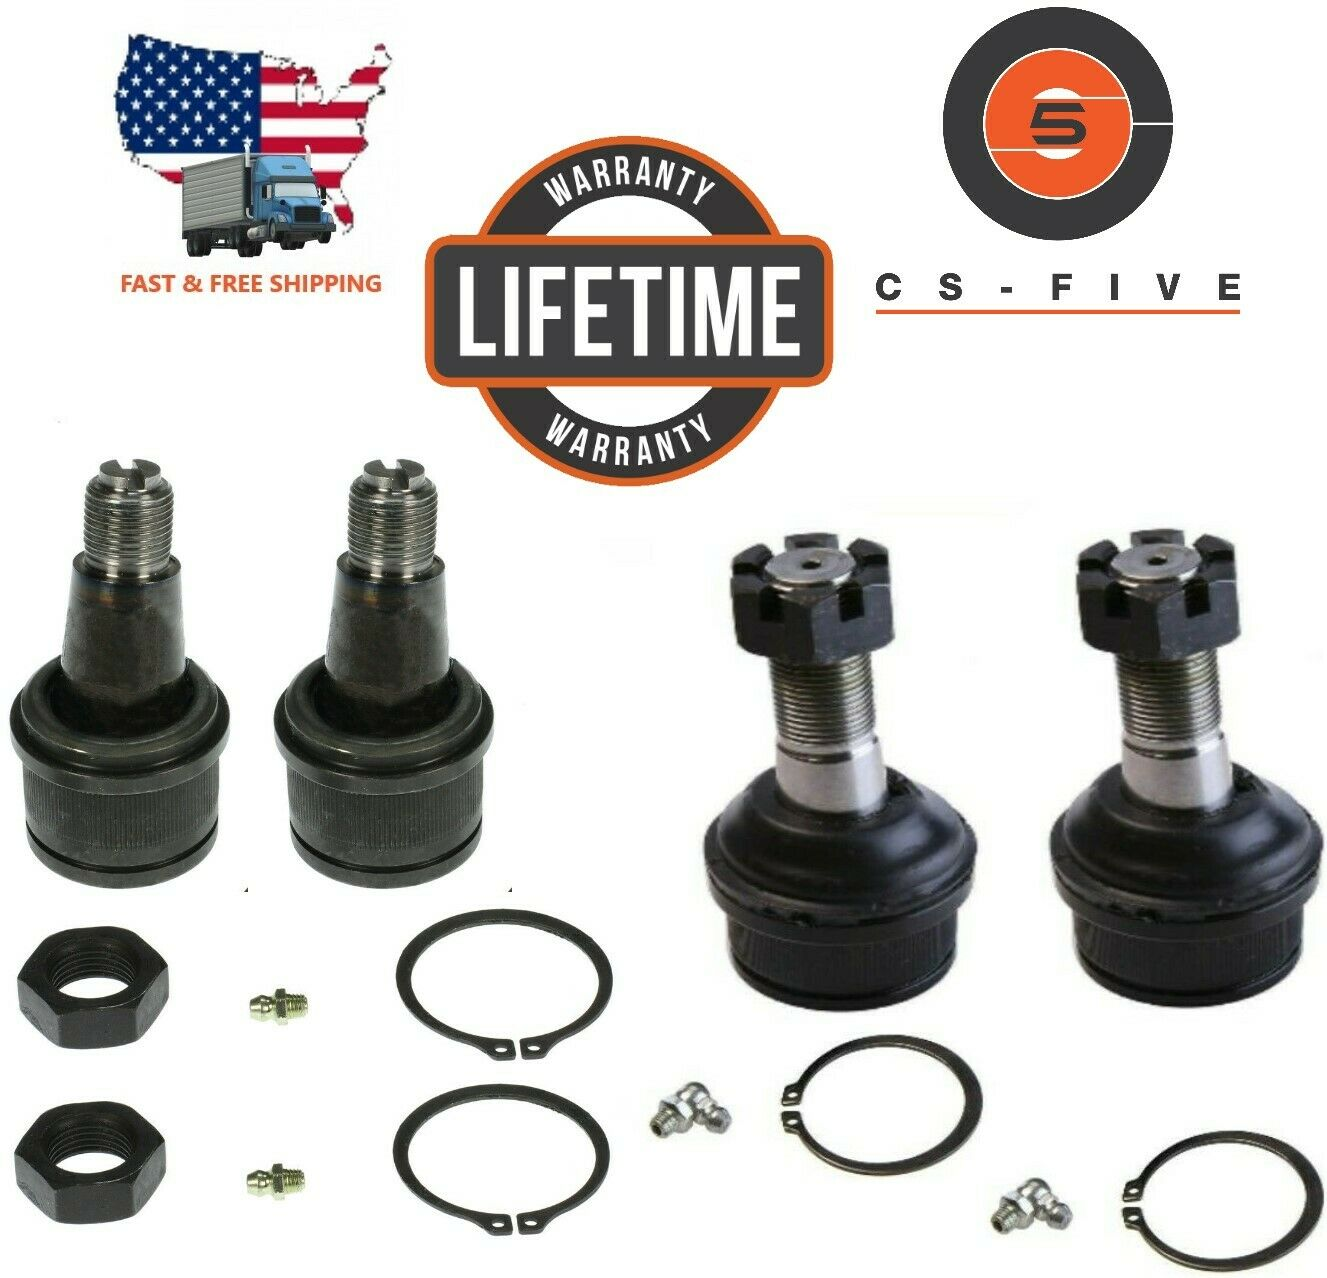 LIFETIME 4 Front Upper Lower Ball Joints for FORD F-450 Super Duty 1999-2002 2WD B8607 46D2181A FA1754 260-1395 K8388T 260-1248